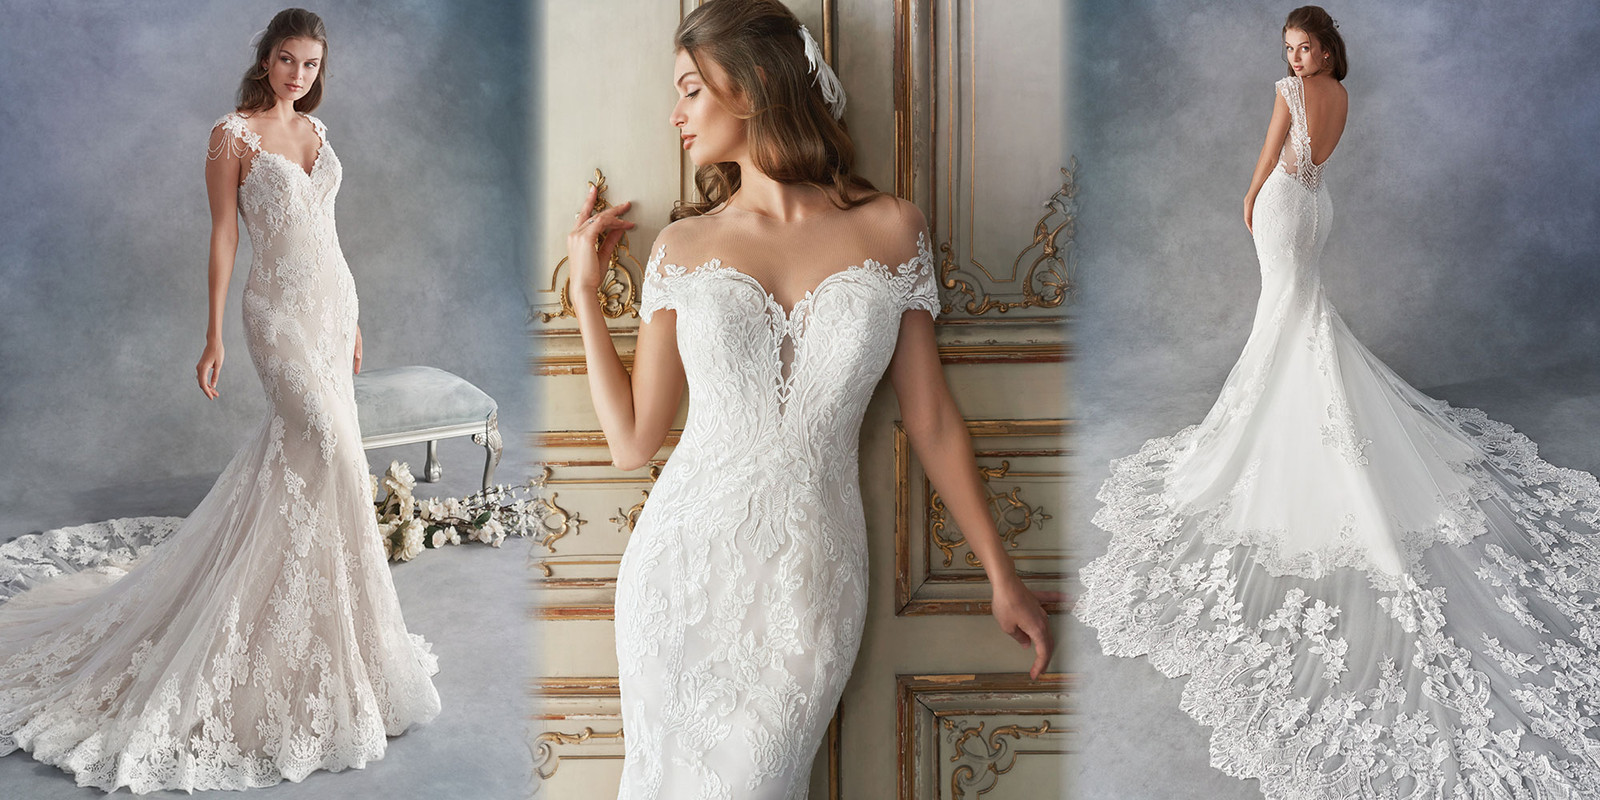 Lace Detailing & See-through Designs in Bridal Fashion